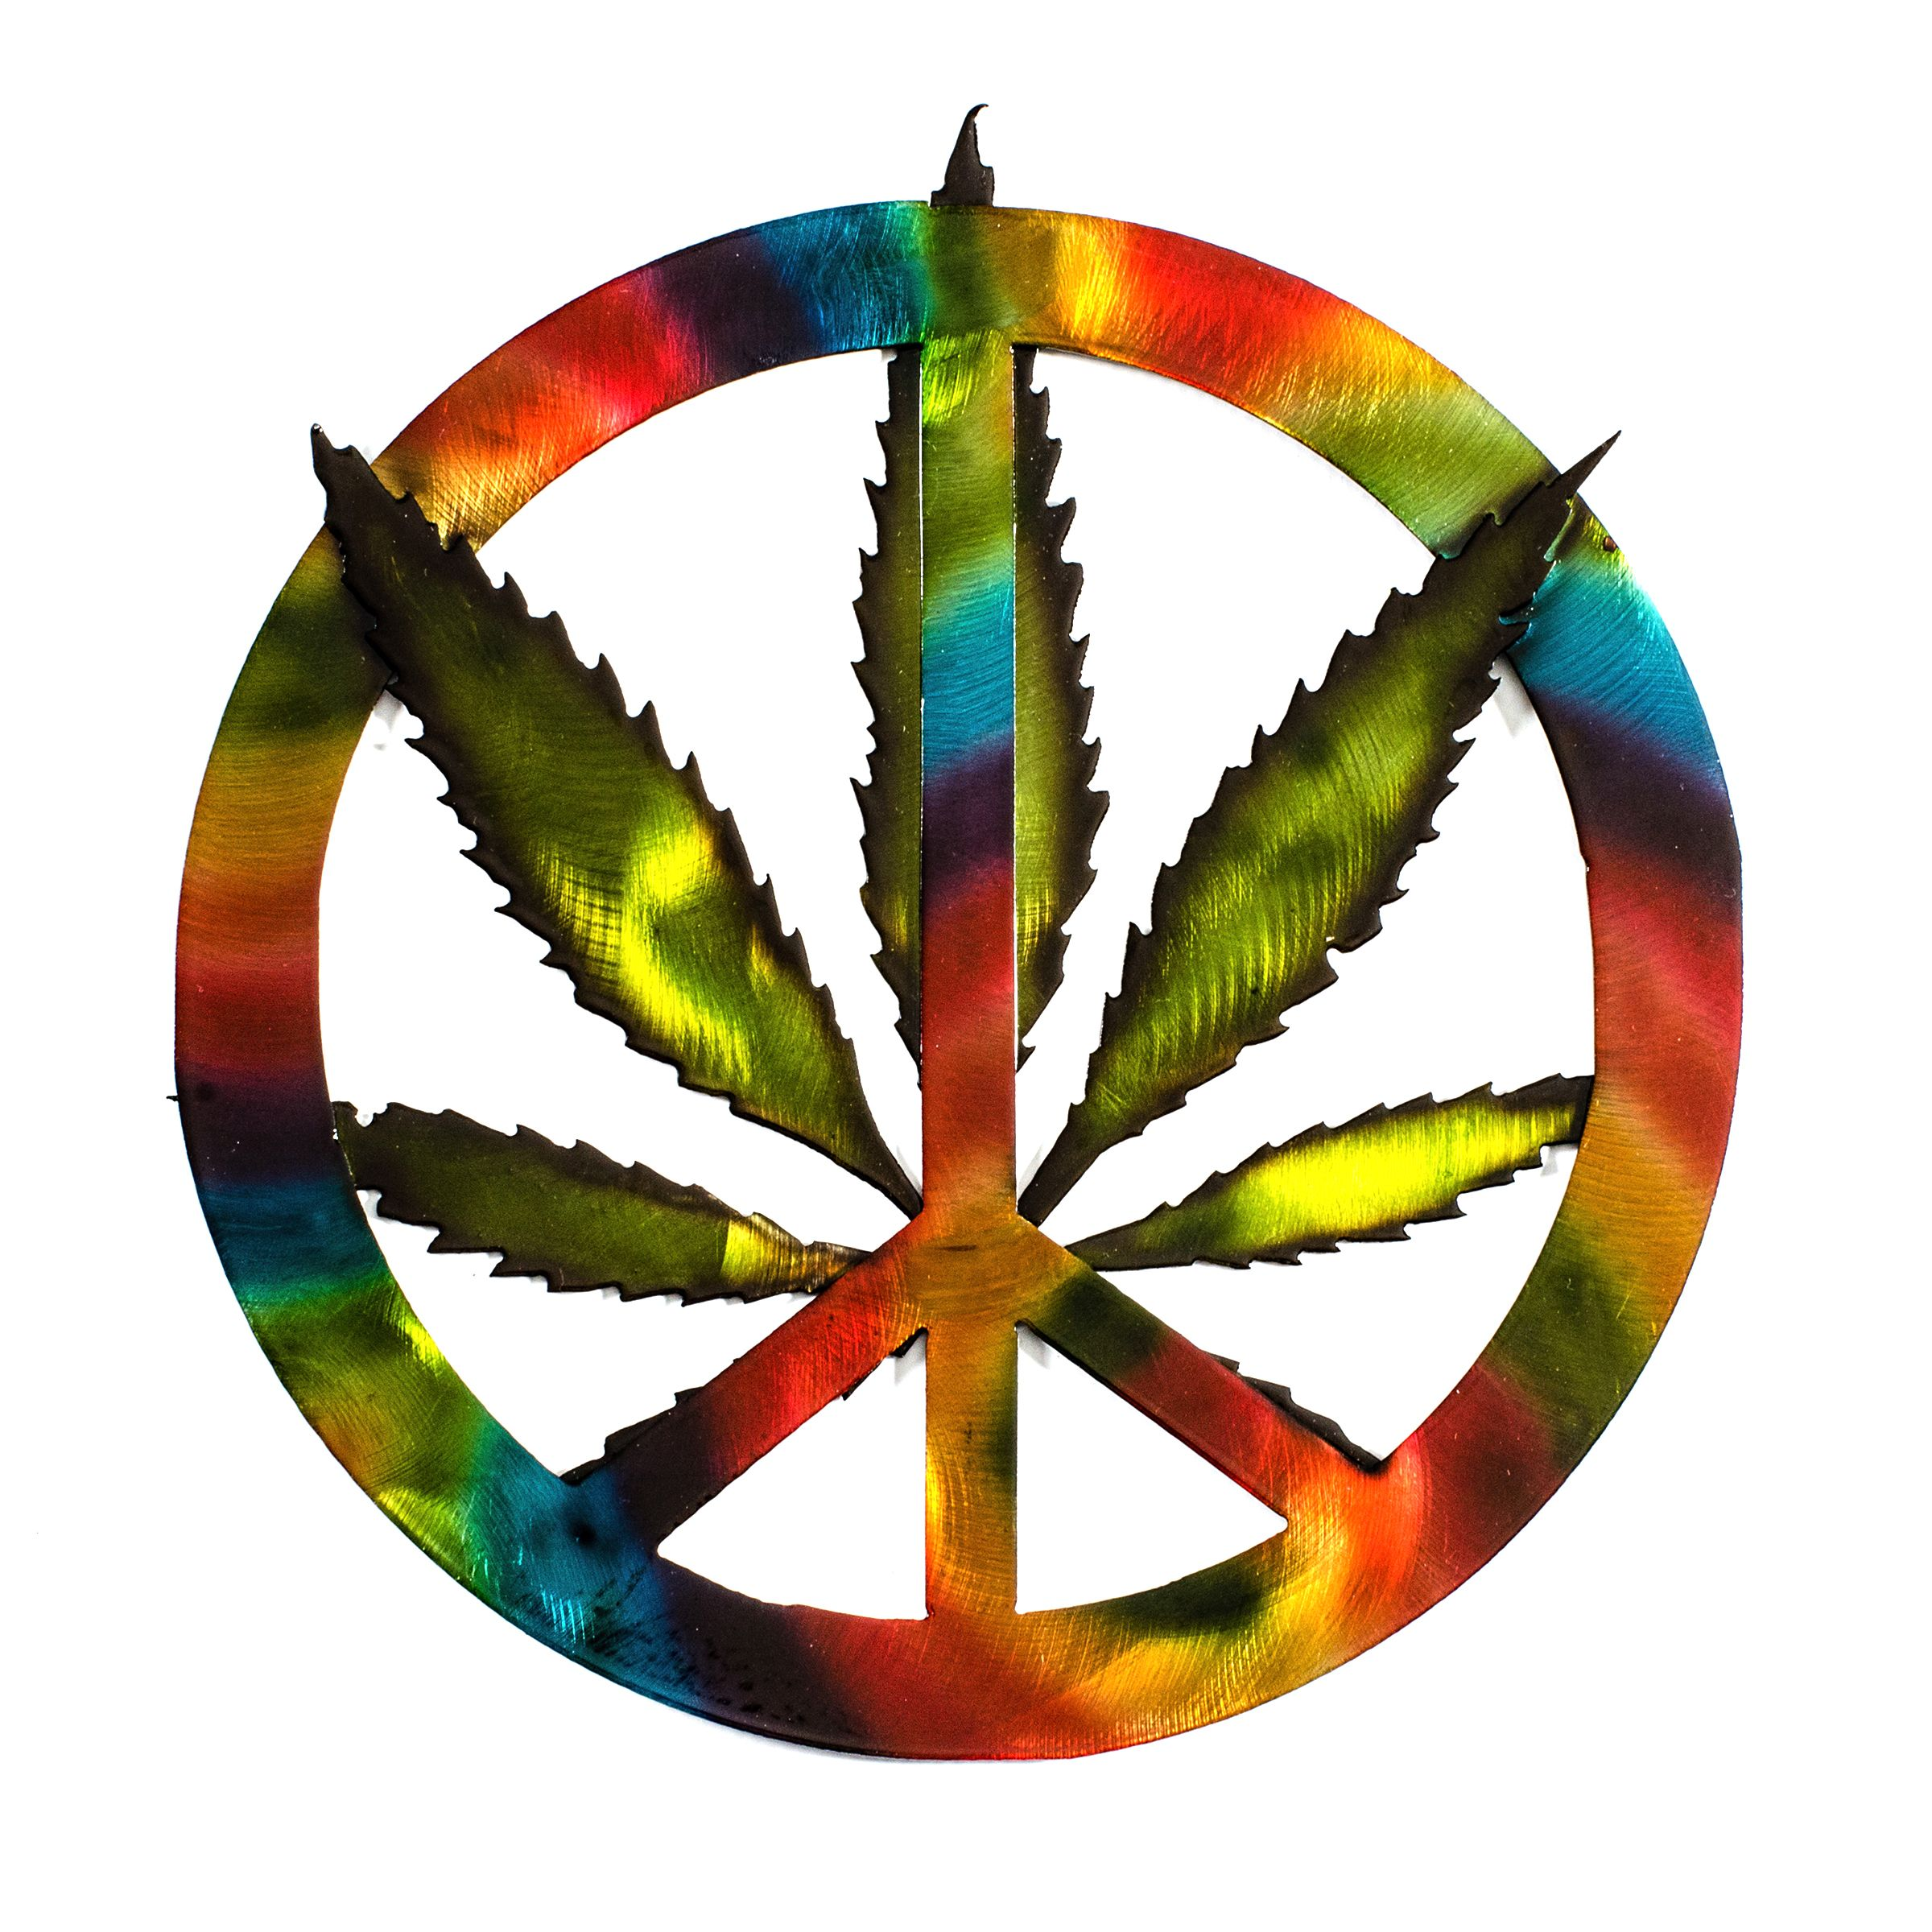 Painted peace sign photo